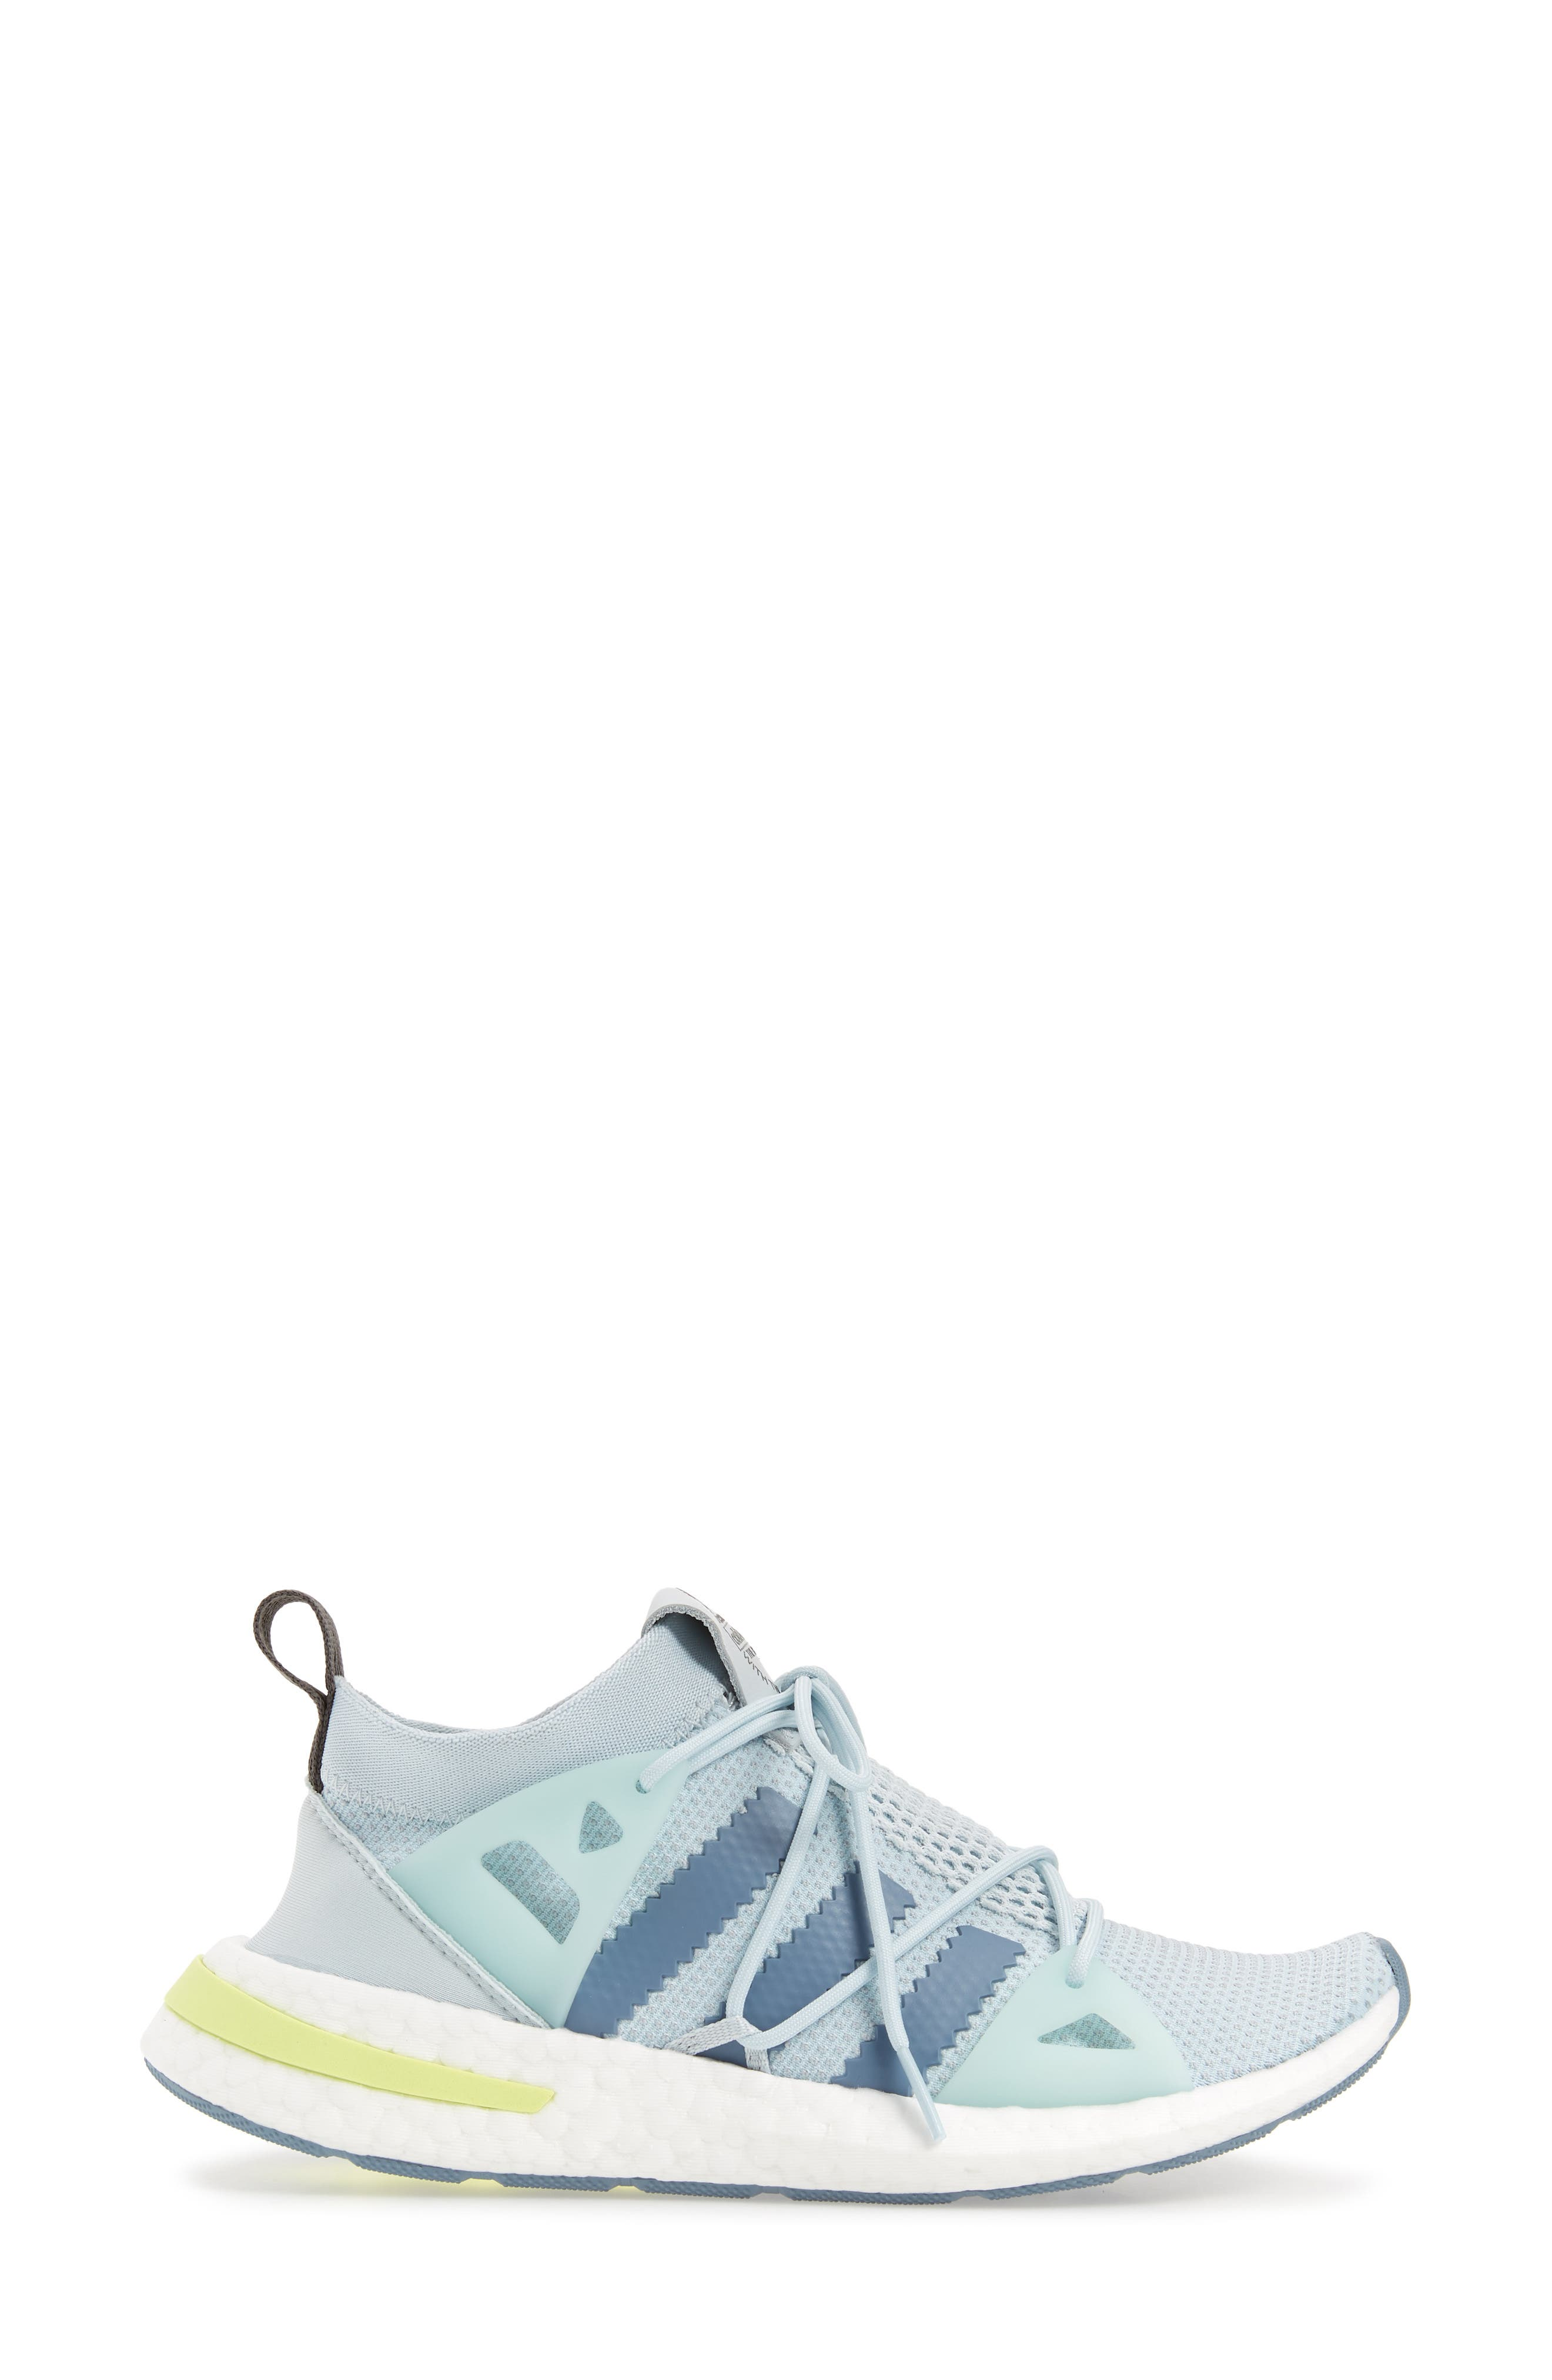 Arkyn Sneaker,                             Alternate thumbnail 3, color,                             453